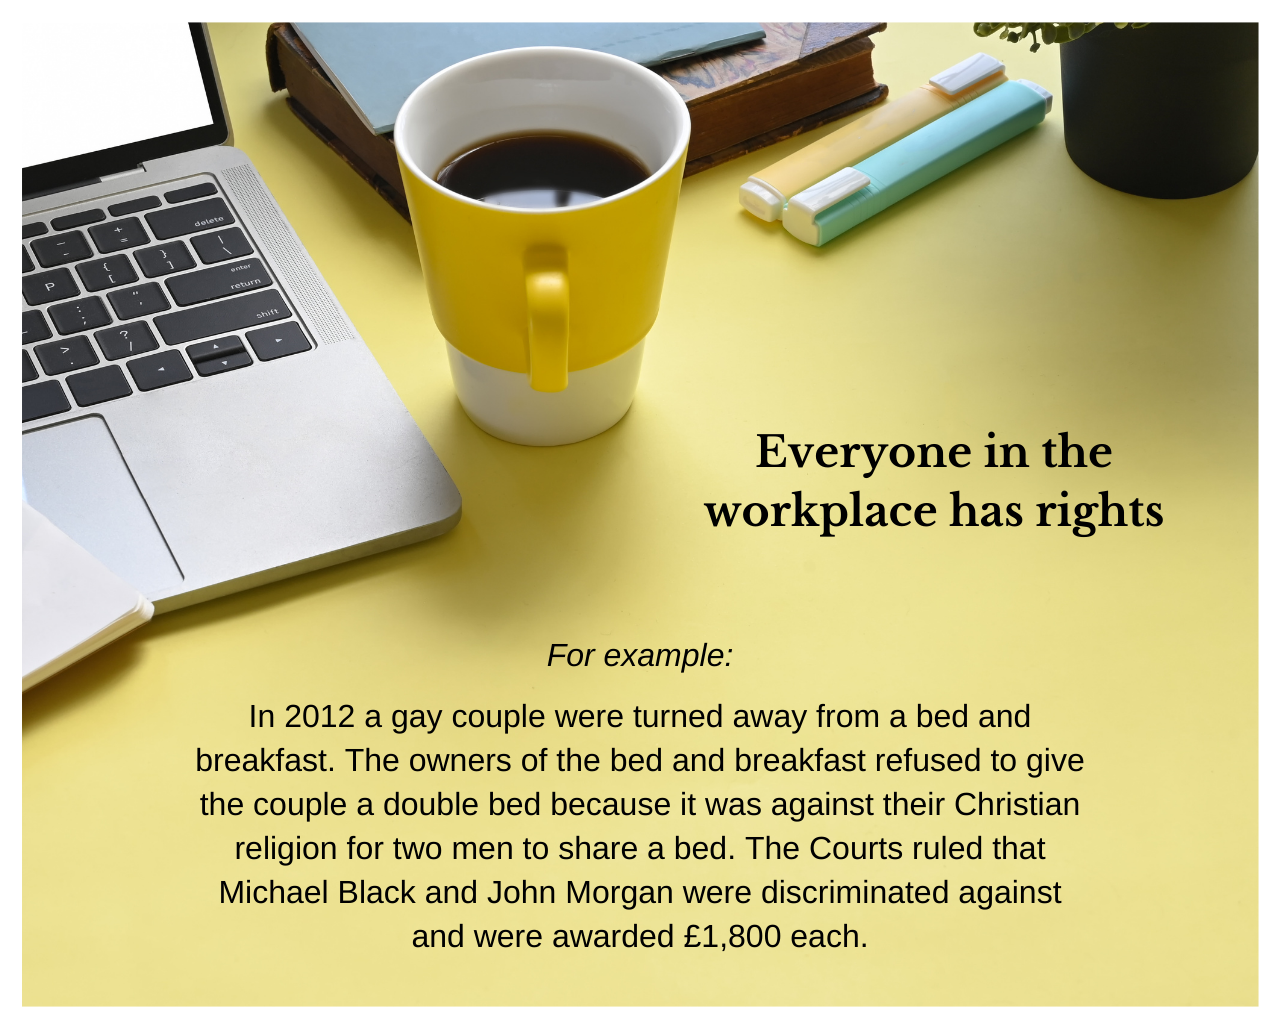 Equality - Workplace rights